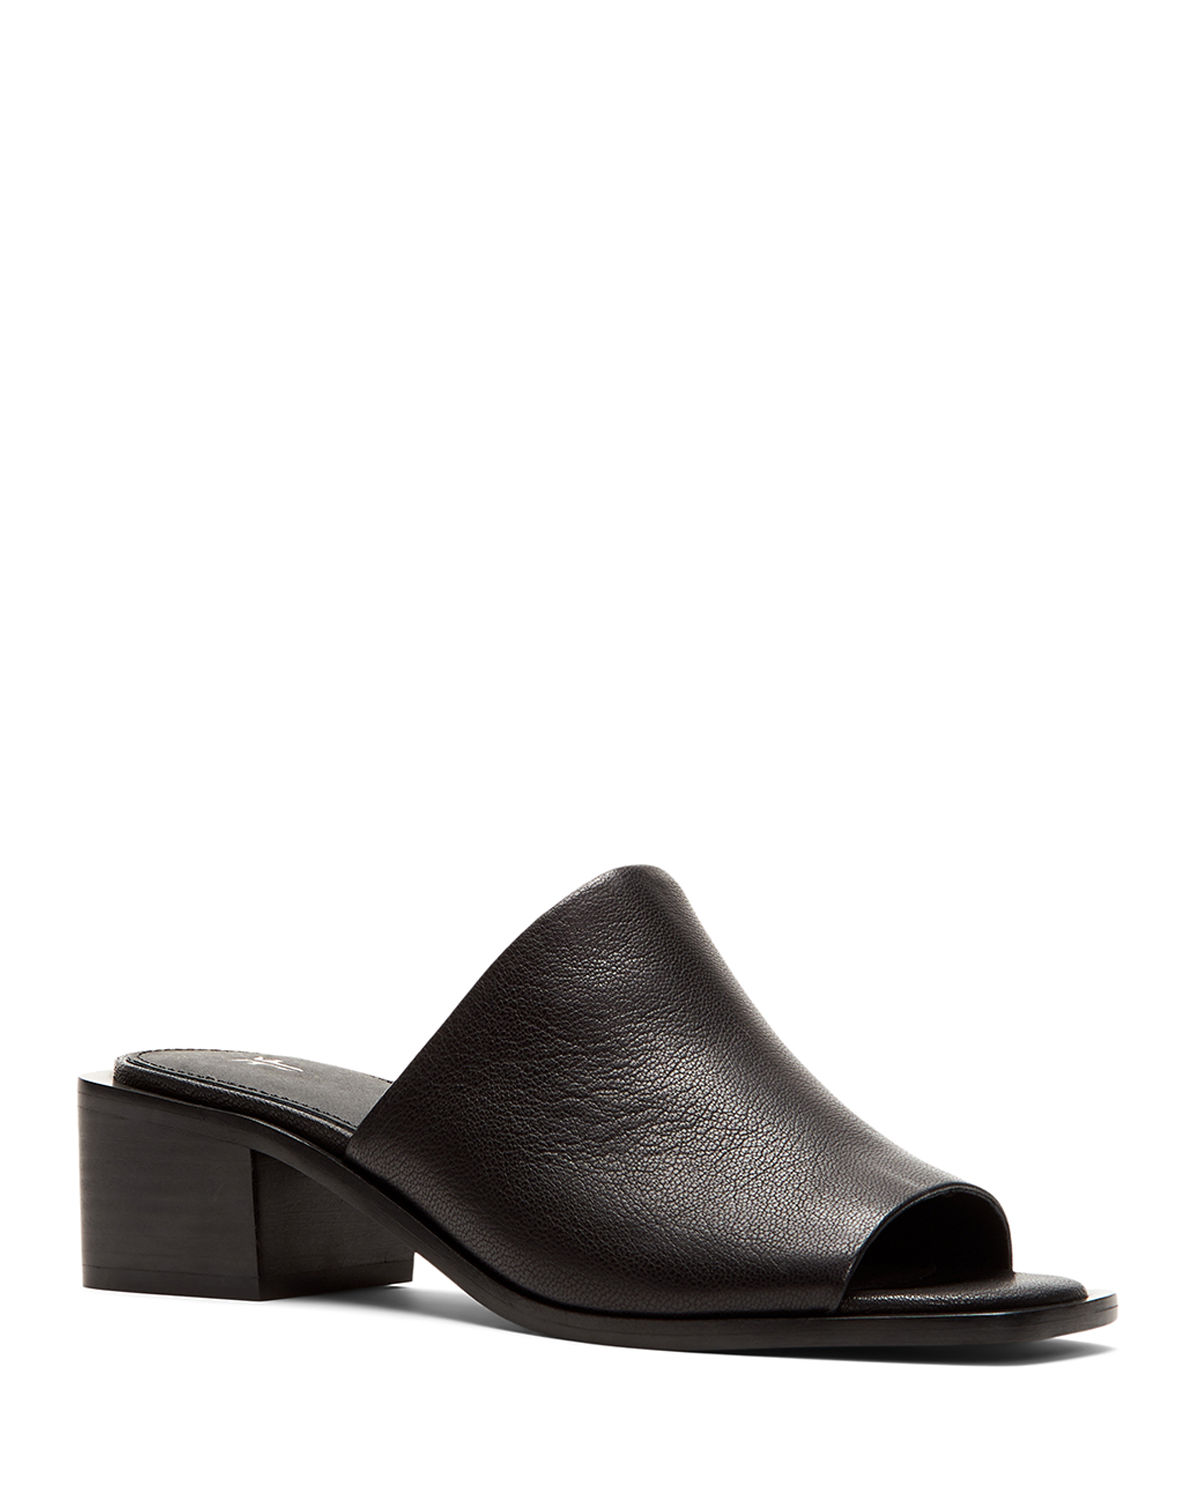 Lucia Leather Mule Sandals